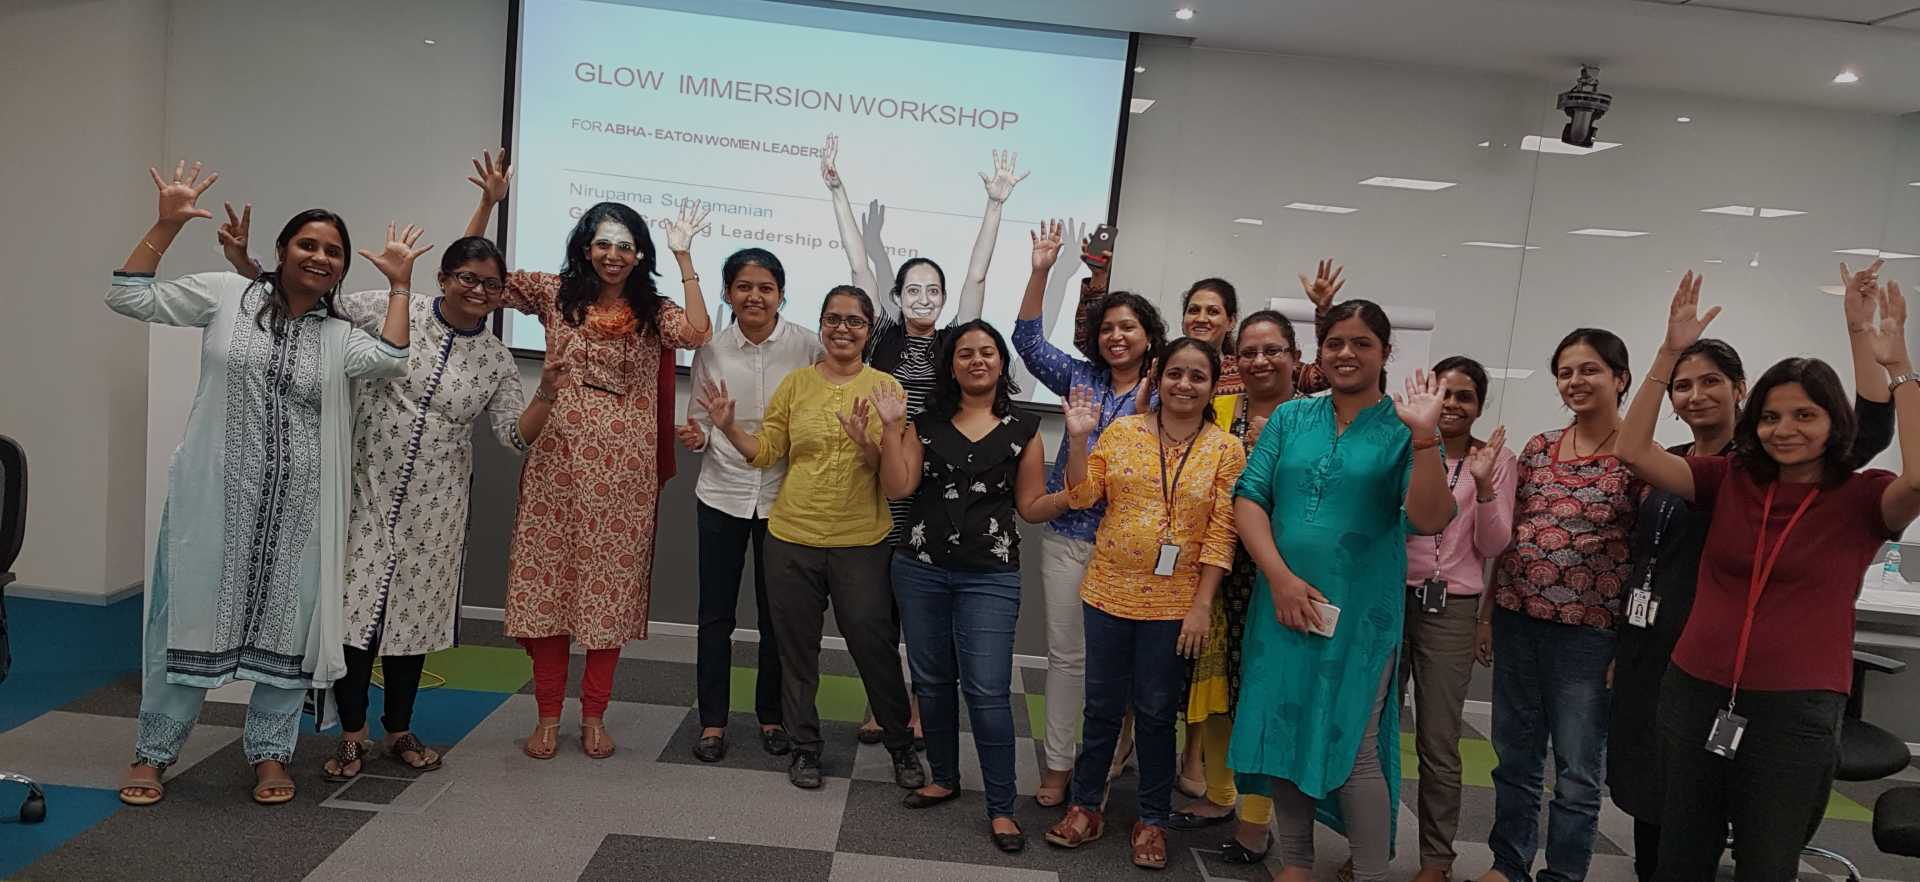 GLOW Immersion session at Eaton Technologies